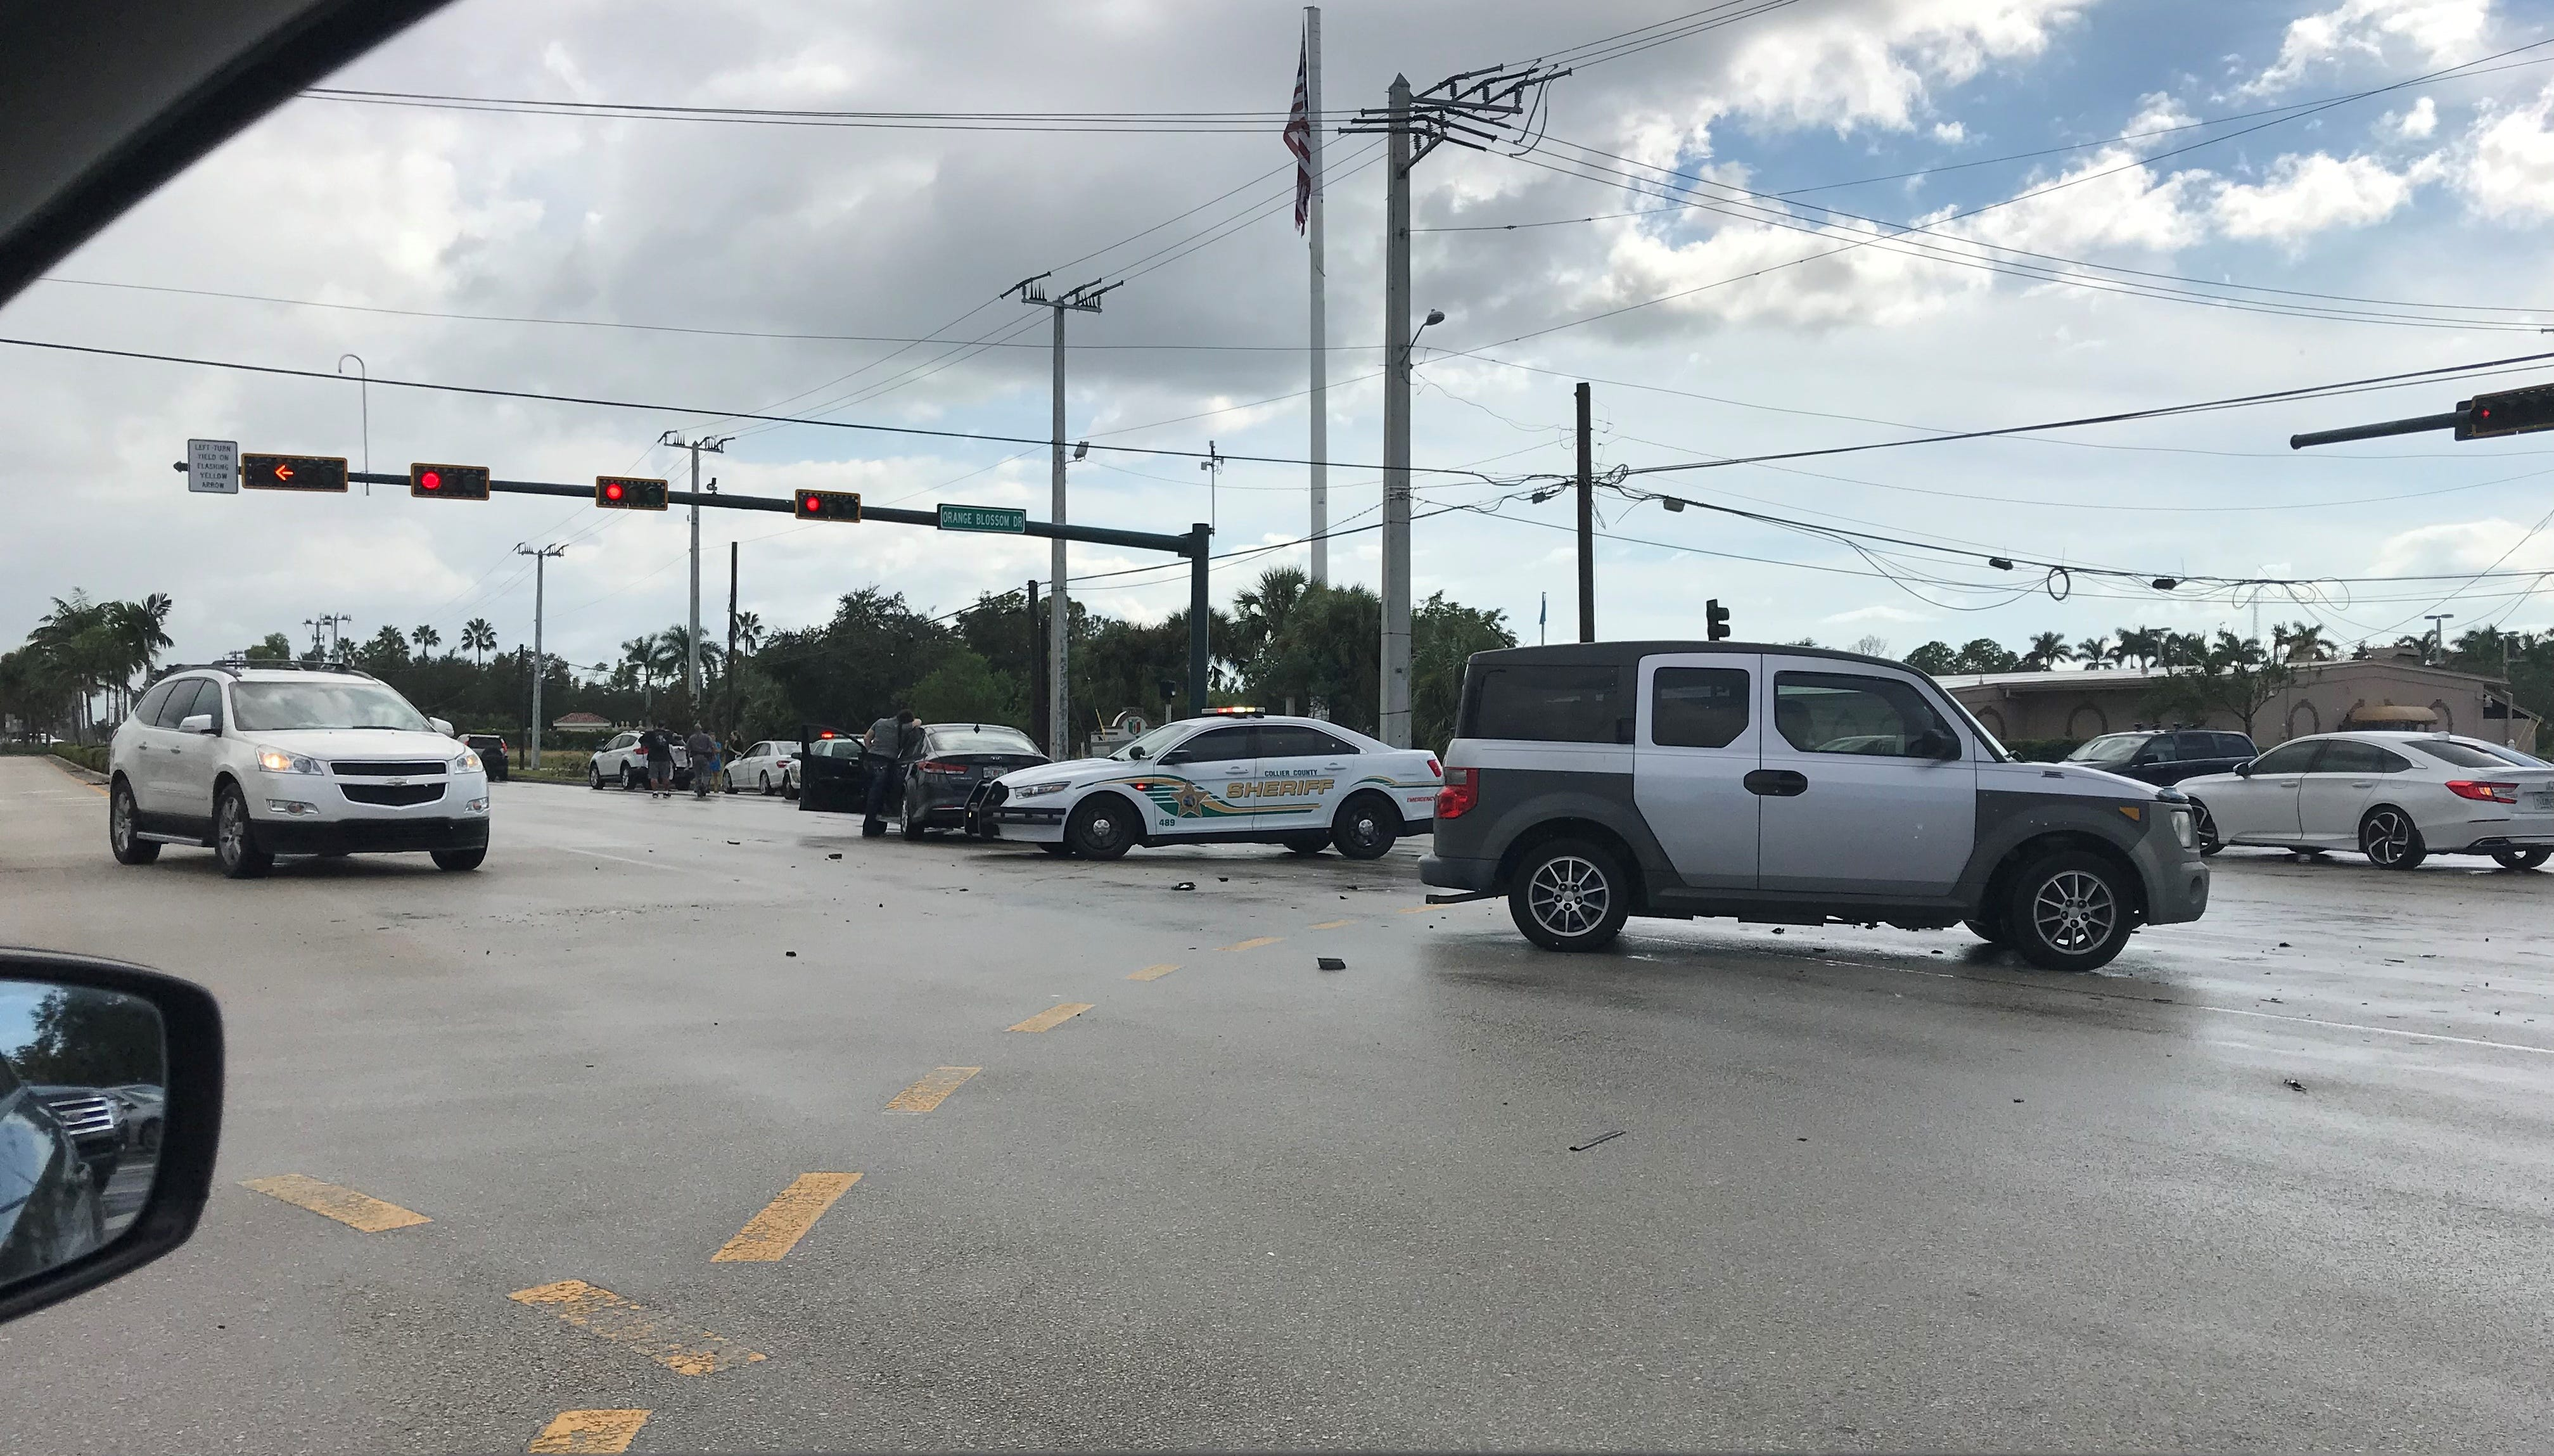 Three vehicles crash Sunday in same intersection as Thursday's deadly collision